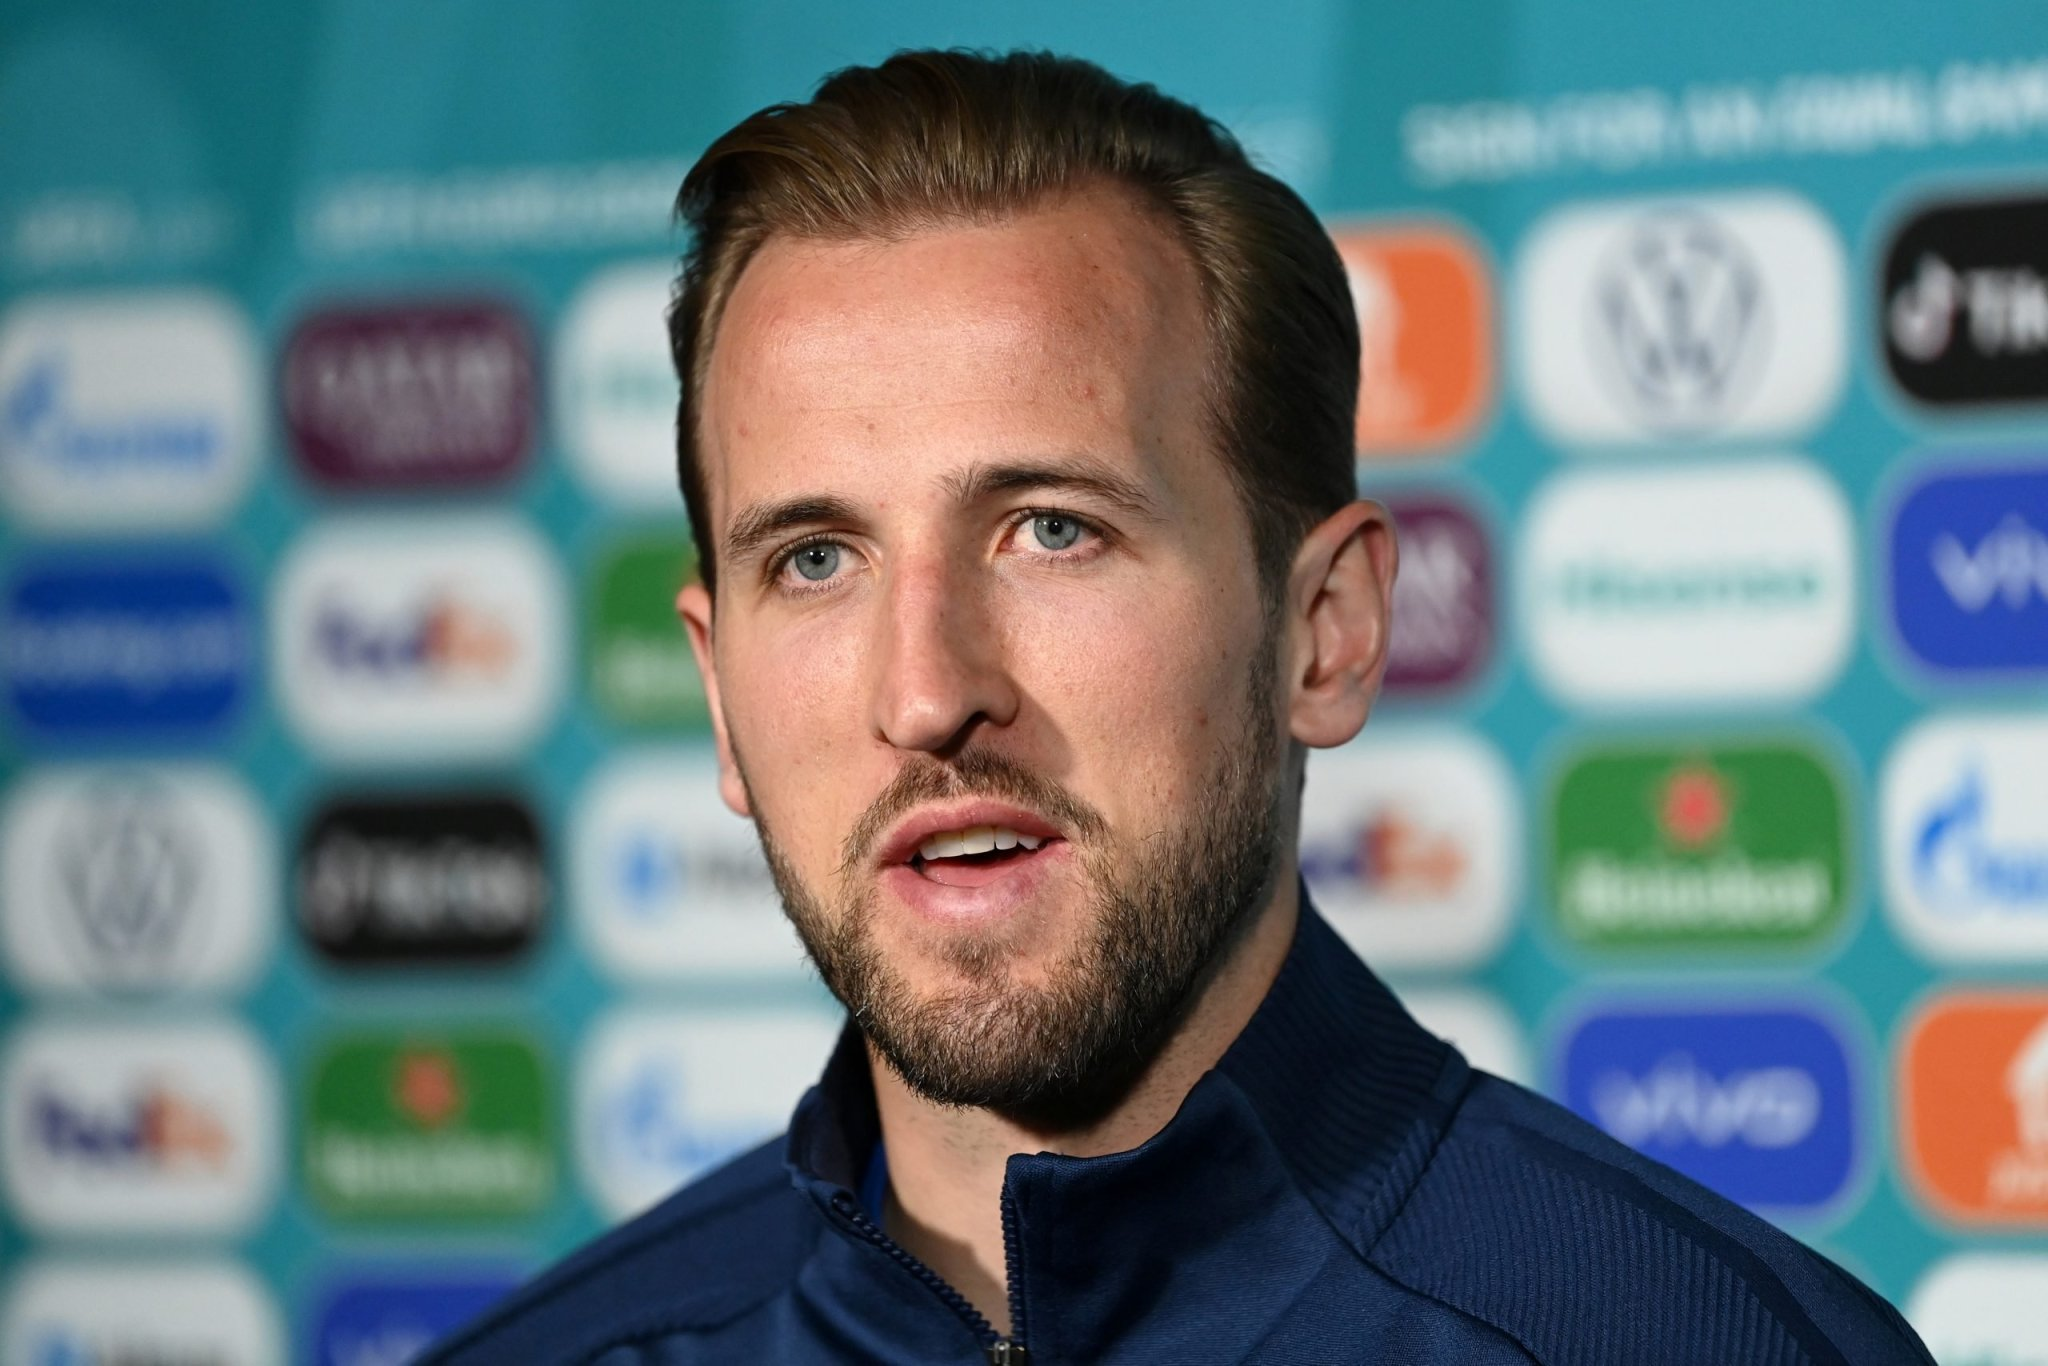 Soccer-Kane, Neuer to wear rainbow captain's armbands in Euro game